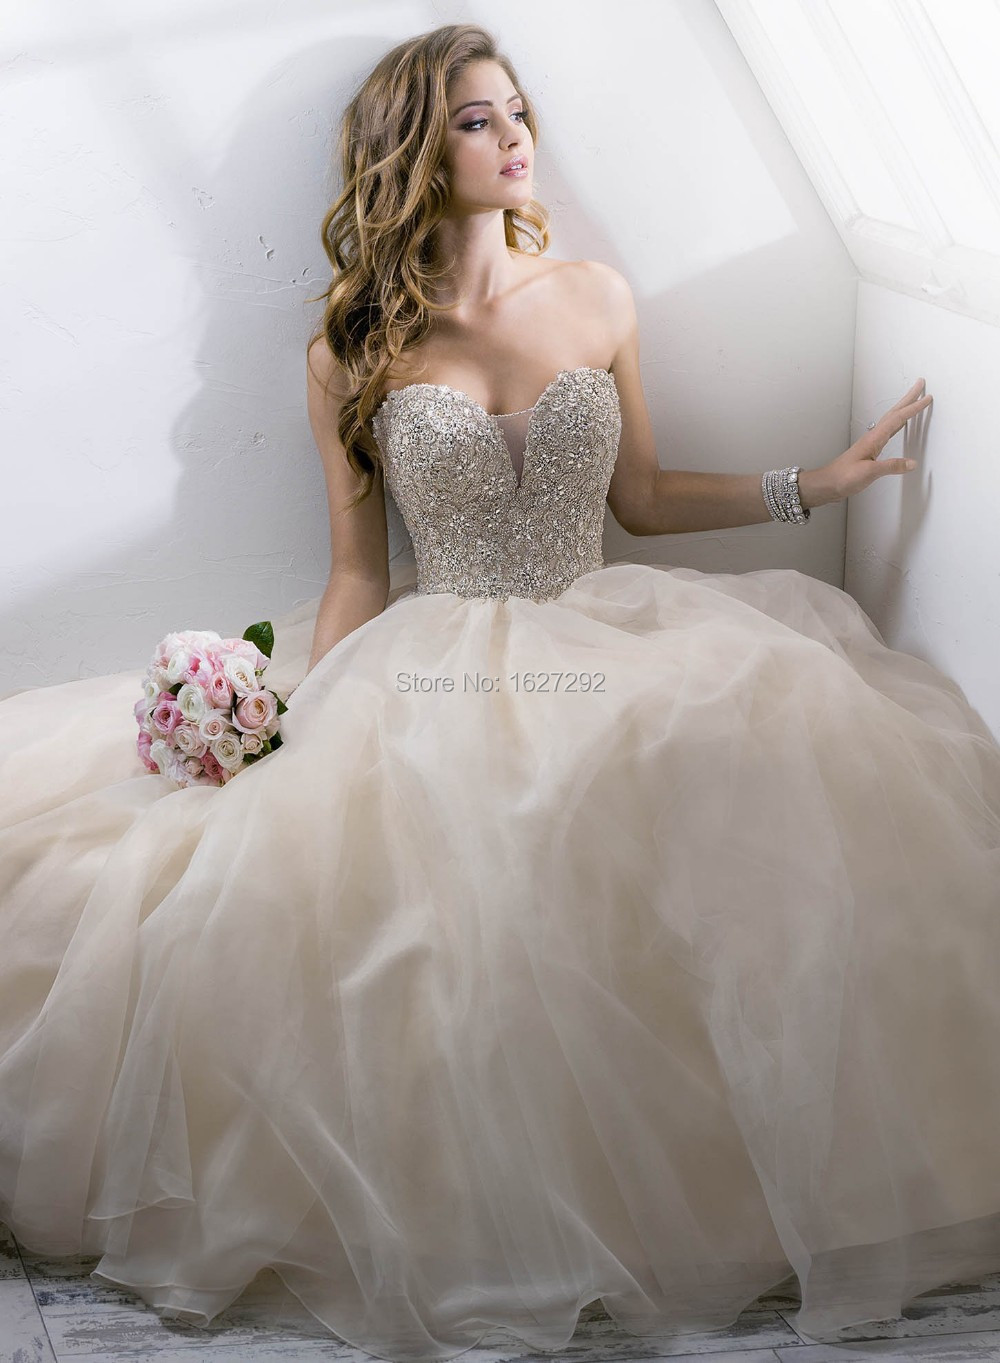 Wedding Dresses With Crystals : Vestido de noiva custom made romantic beading crystal